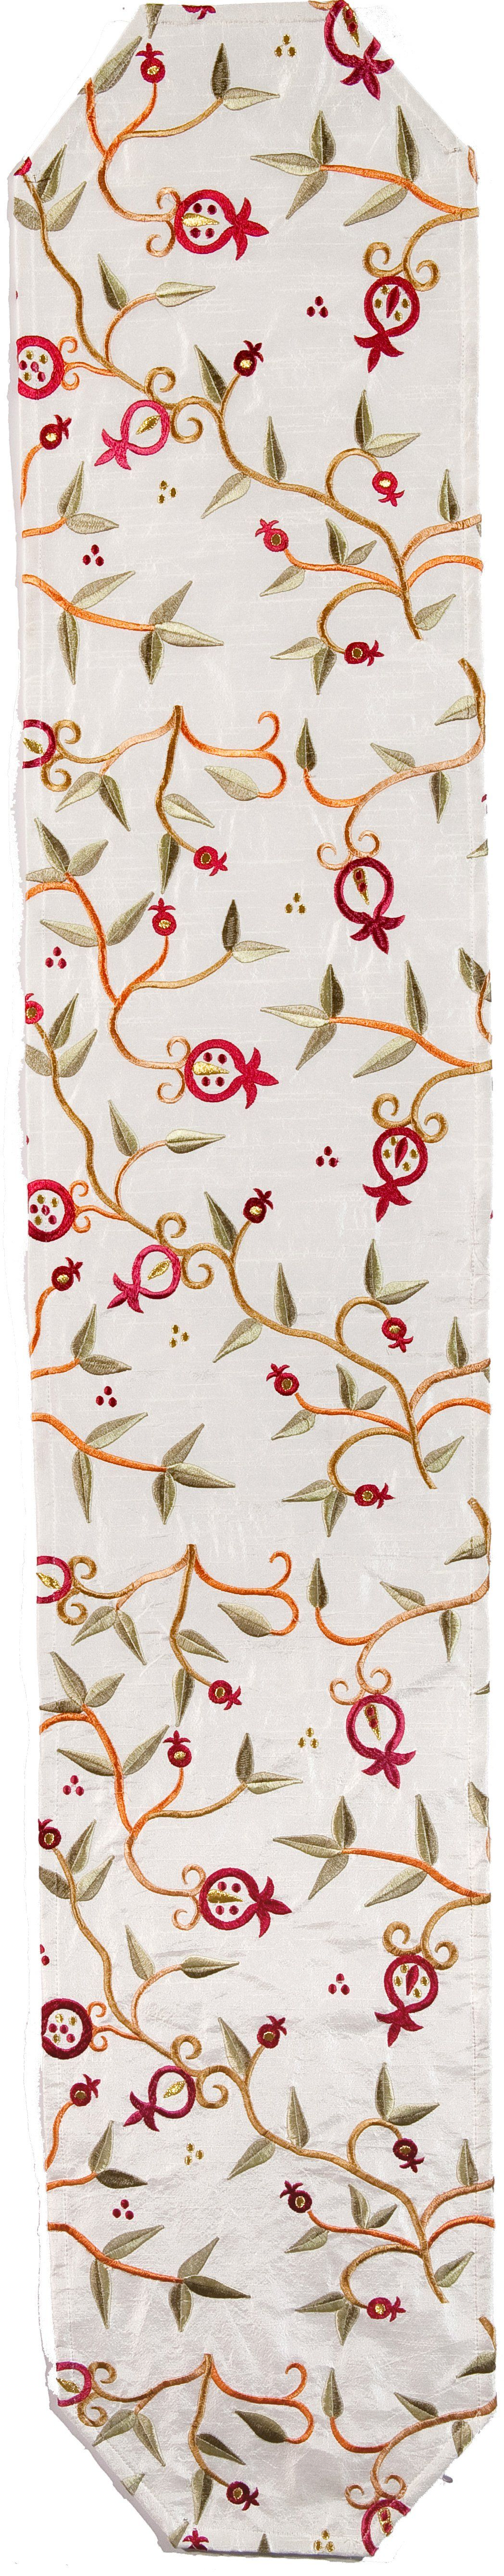 Runner embroidery with pomegranates in colors in products